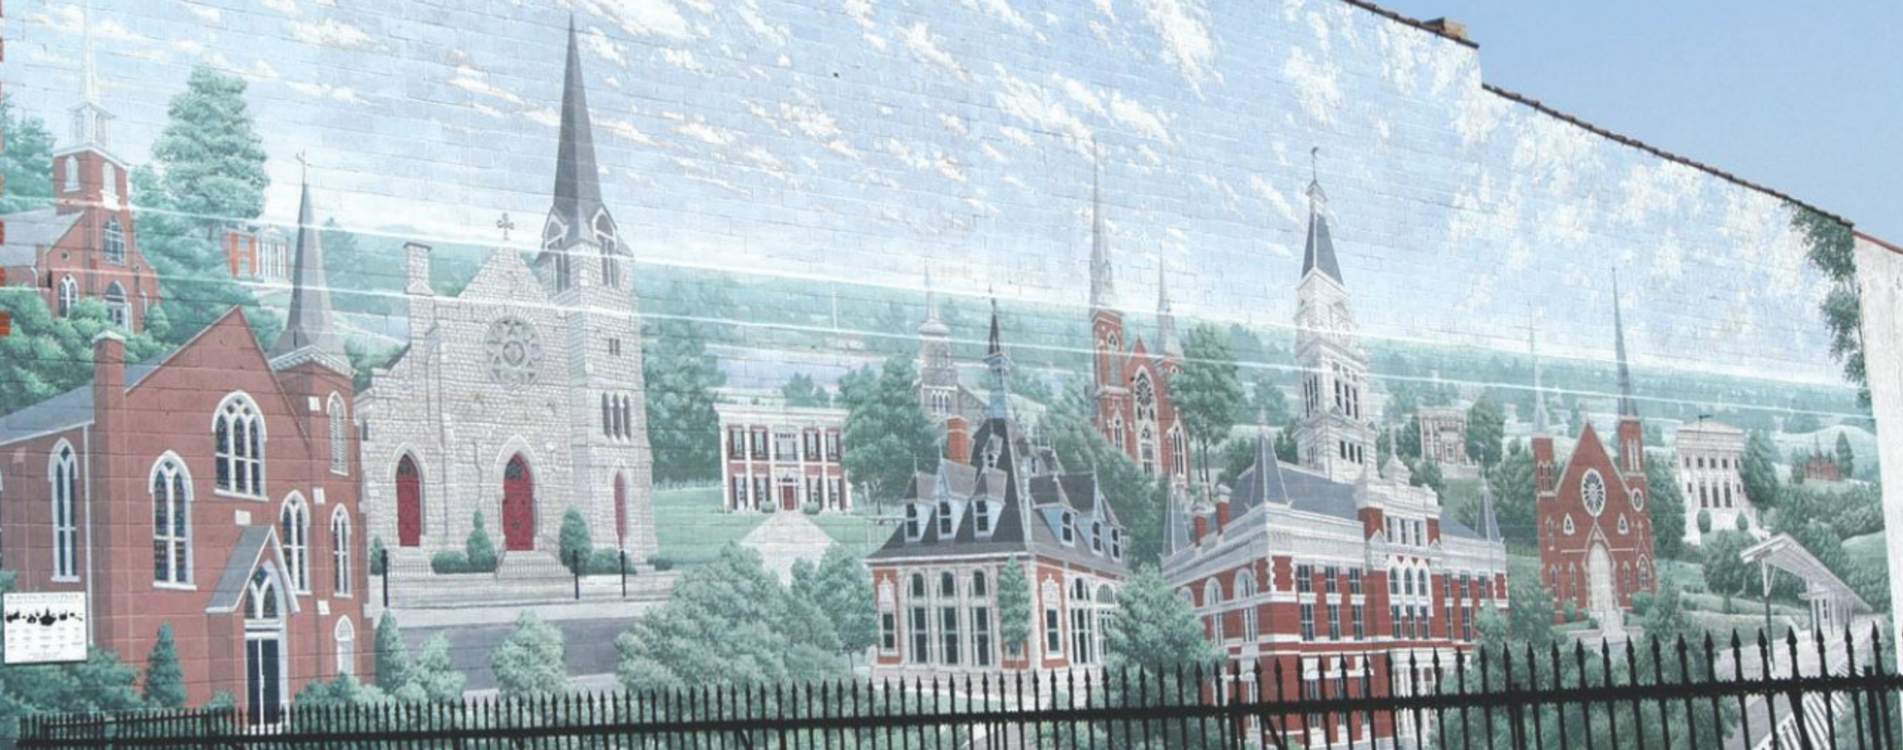 mural of Clarksville historic building